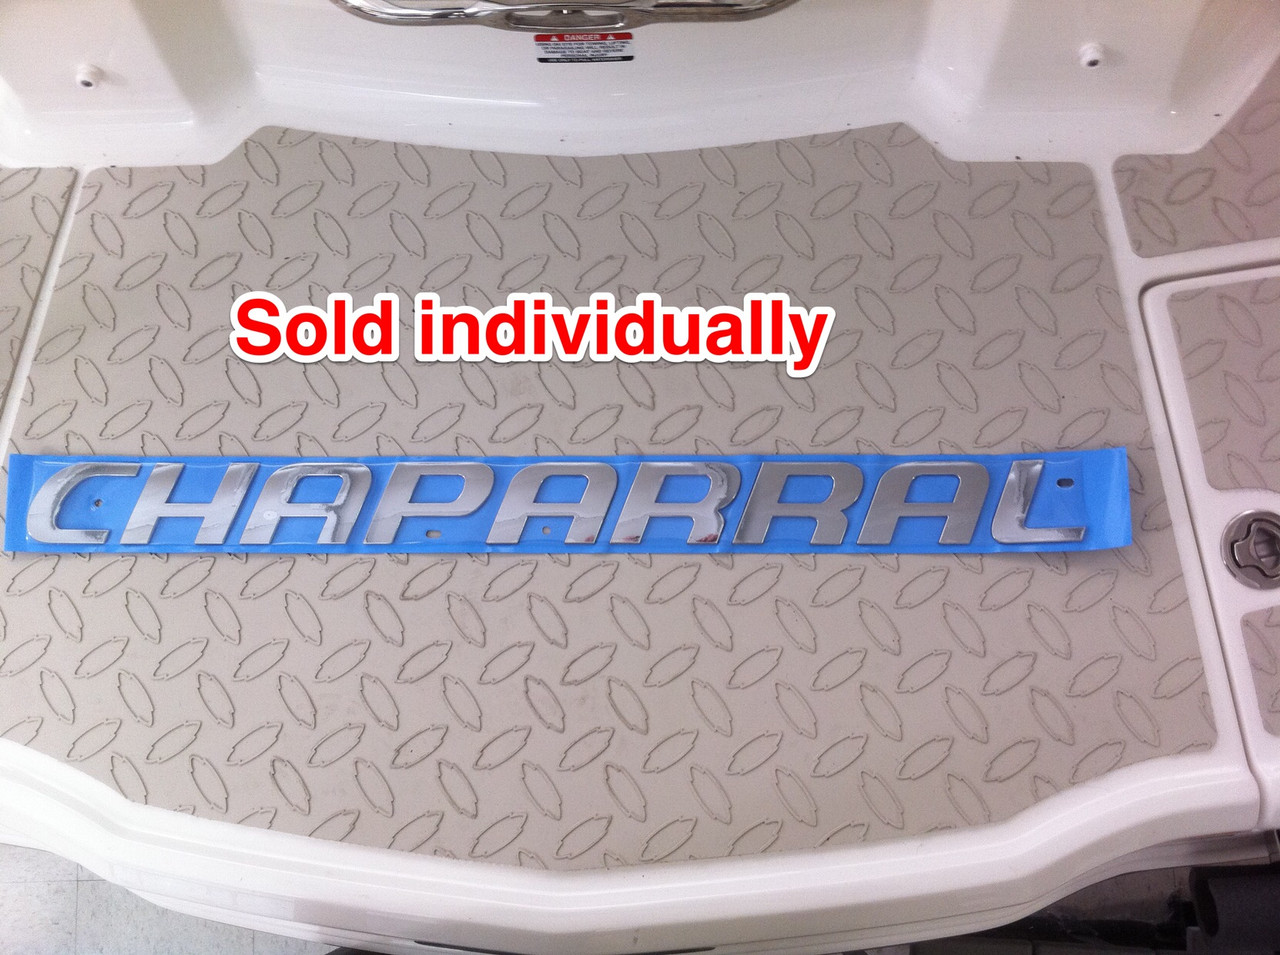 CHAPARRAL LARGE LOGO CHROME INJECTION MOLDED 32 X 2.5 - 14-00146 *In Stock & Ready To Ship!